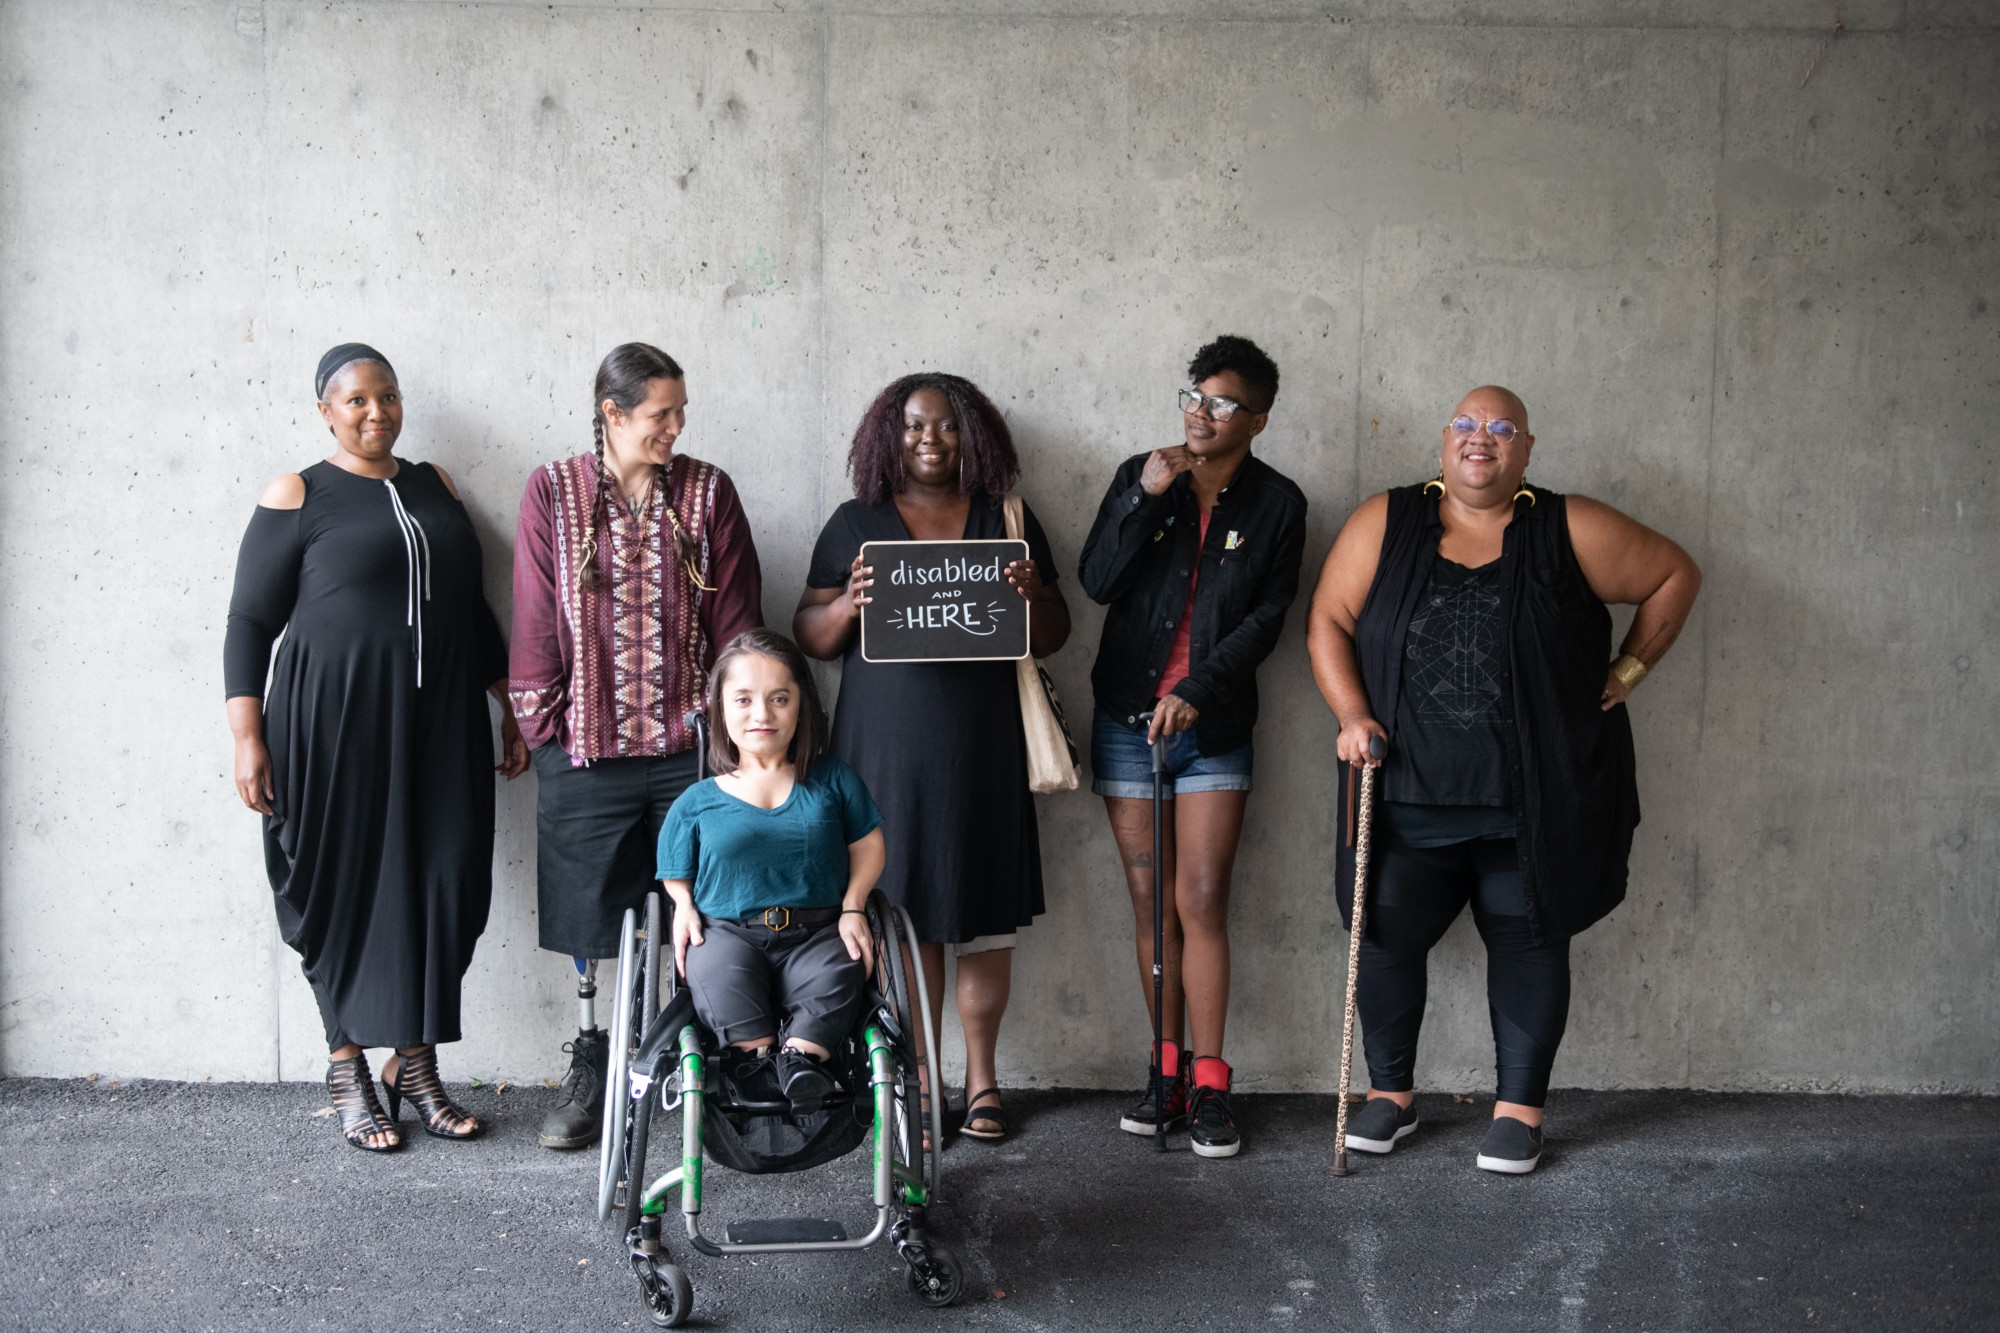 Six disabled people of colour smile and pose in front of a concrete wall.